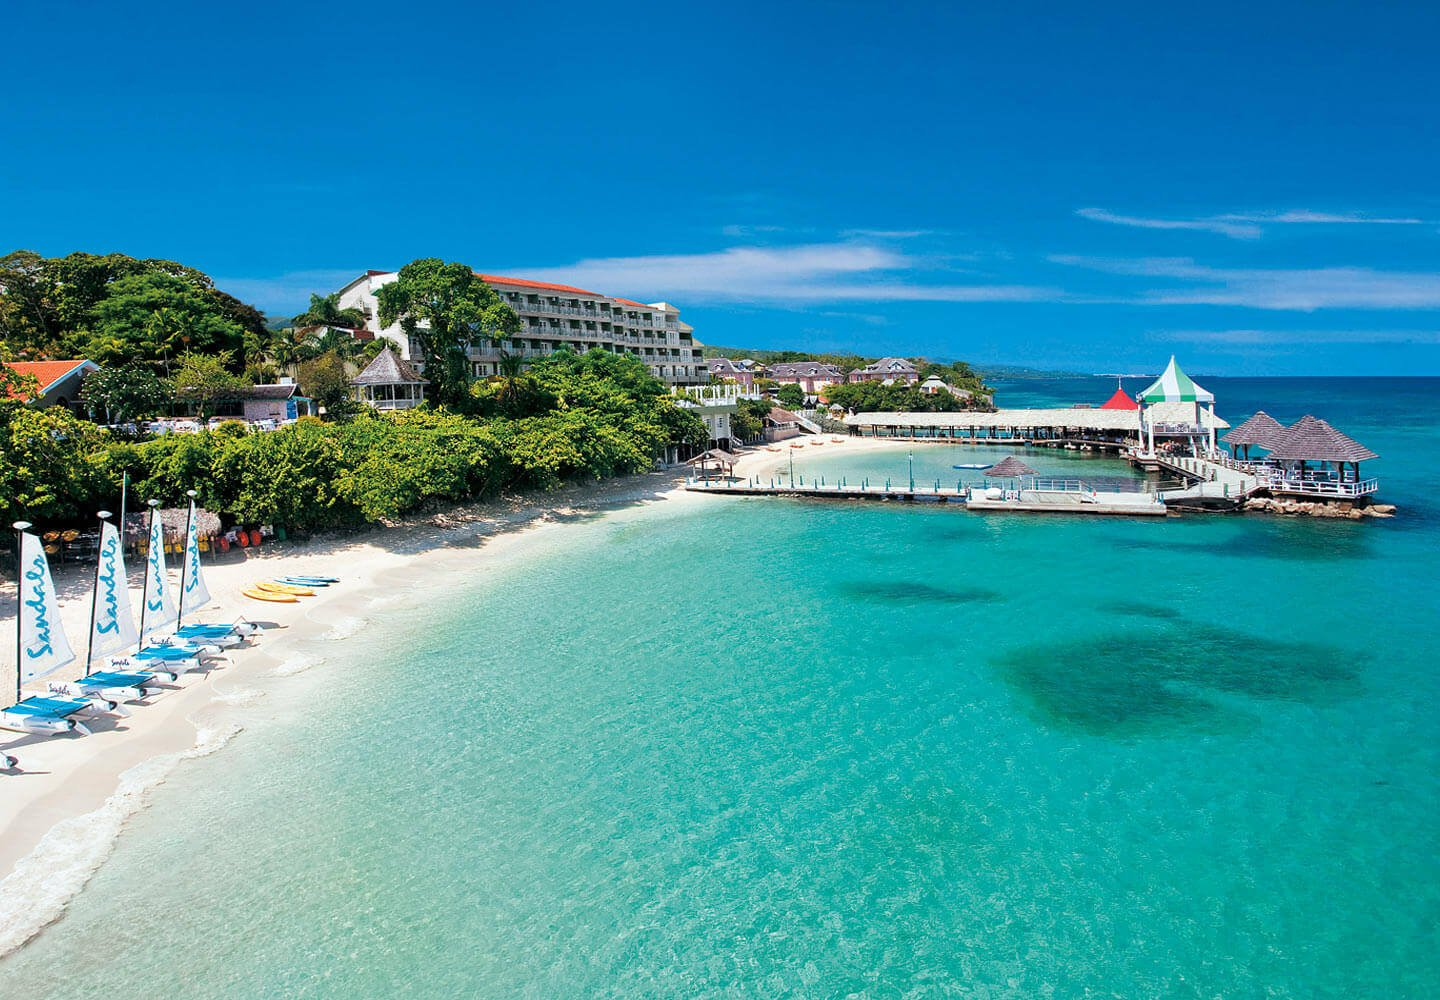 Sandals Ochi Beach Resort - Jamaica Vacations